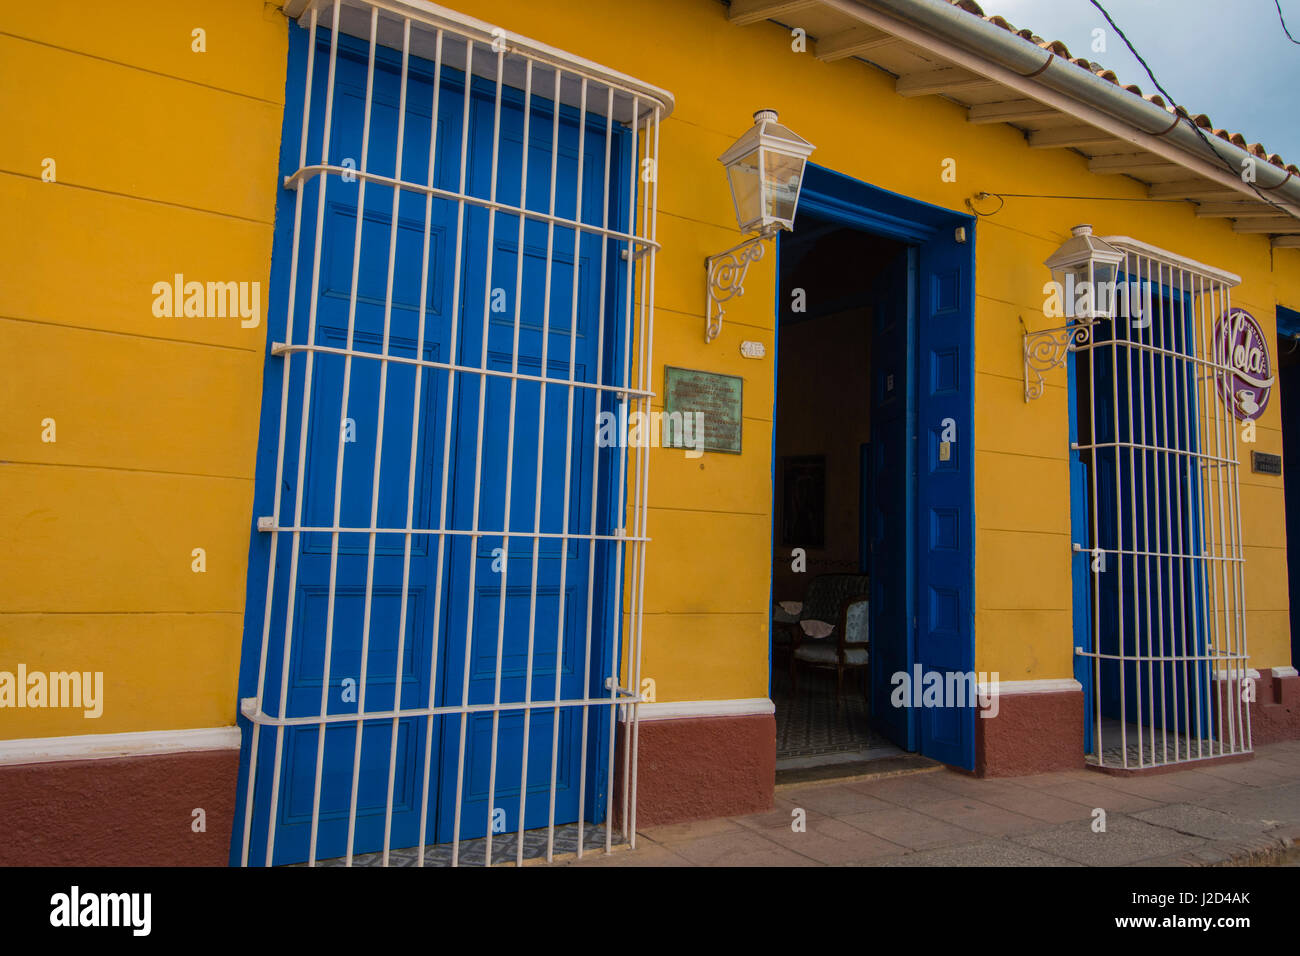 Cuba, Sancti Spiritus Province, Trinidad. Brightly painted houses line the streets of colonial Trinidad. - Stock Image